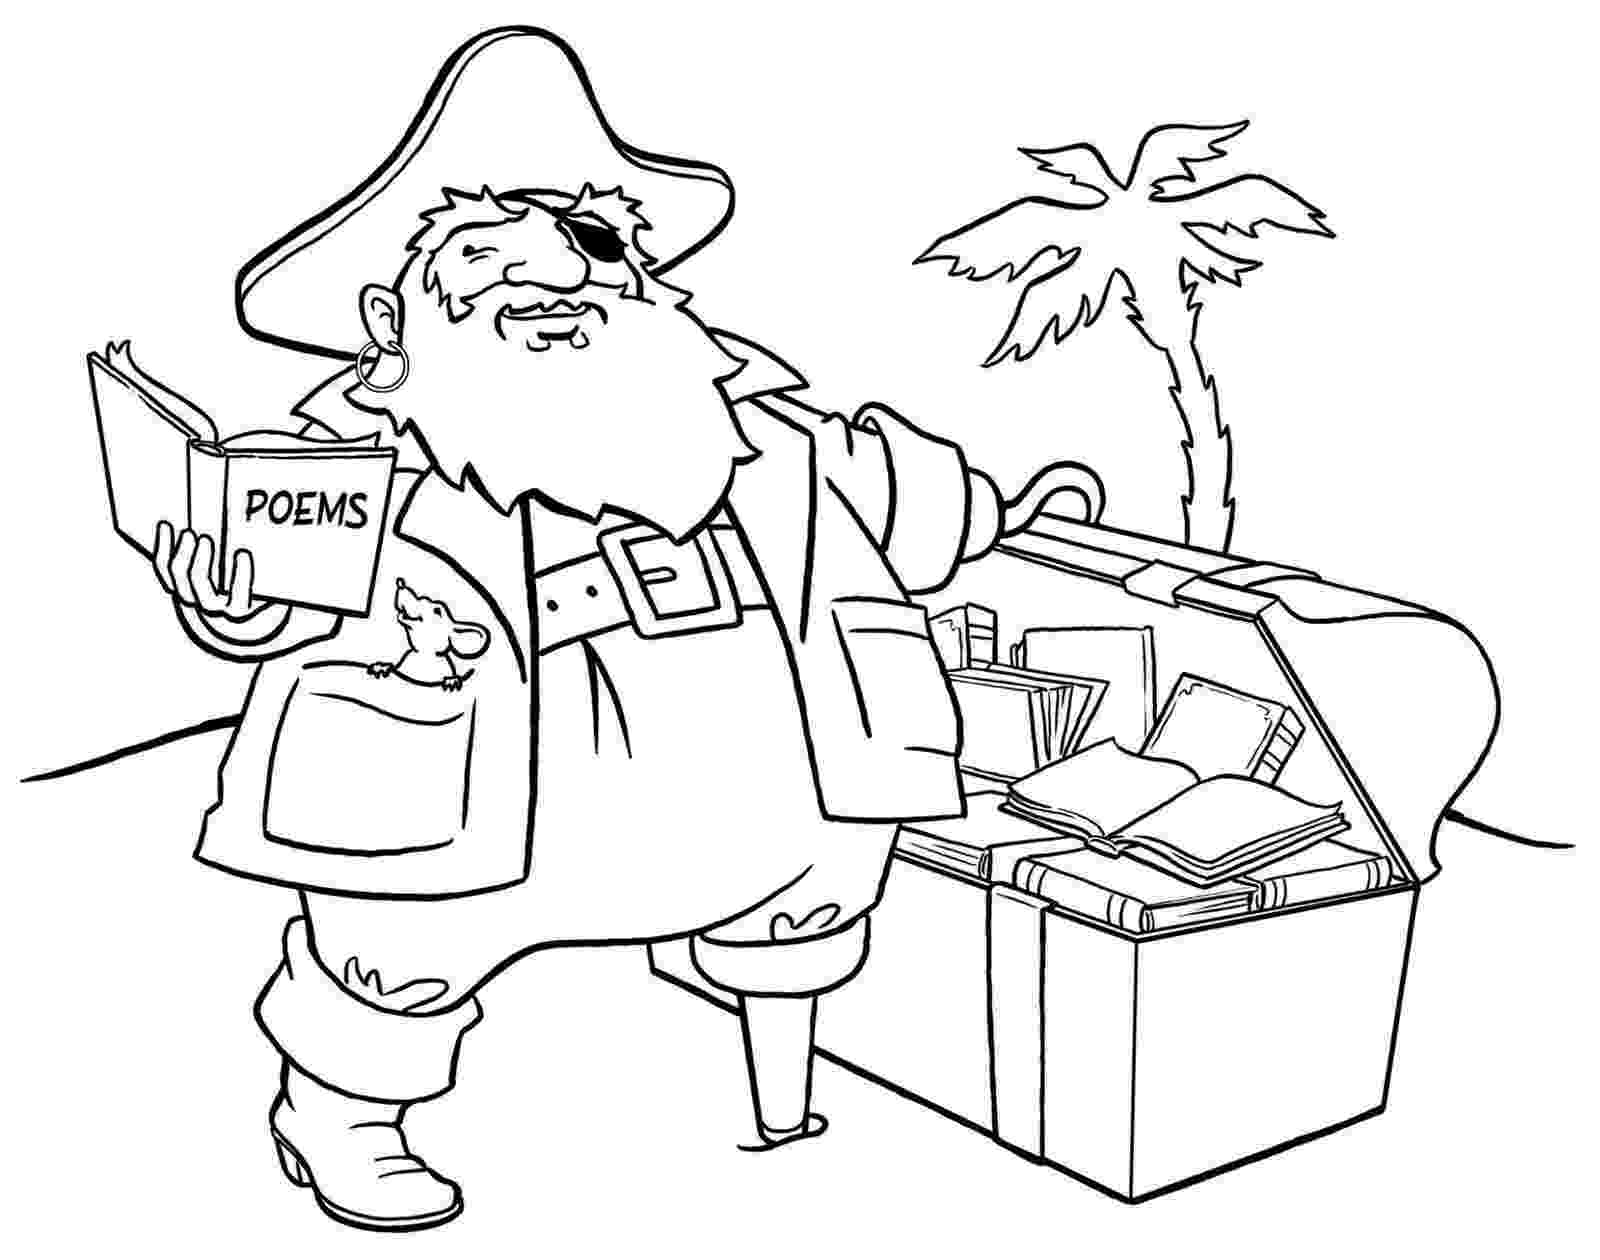 pirates coloring pages free printable pirate coloring pages for kids coloring pages pirates